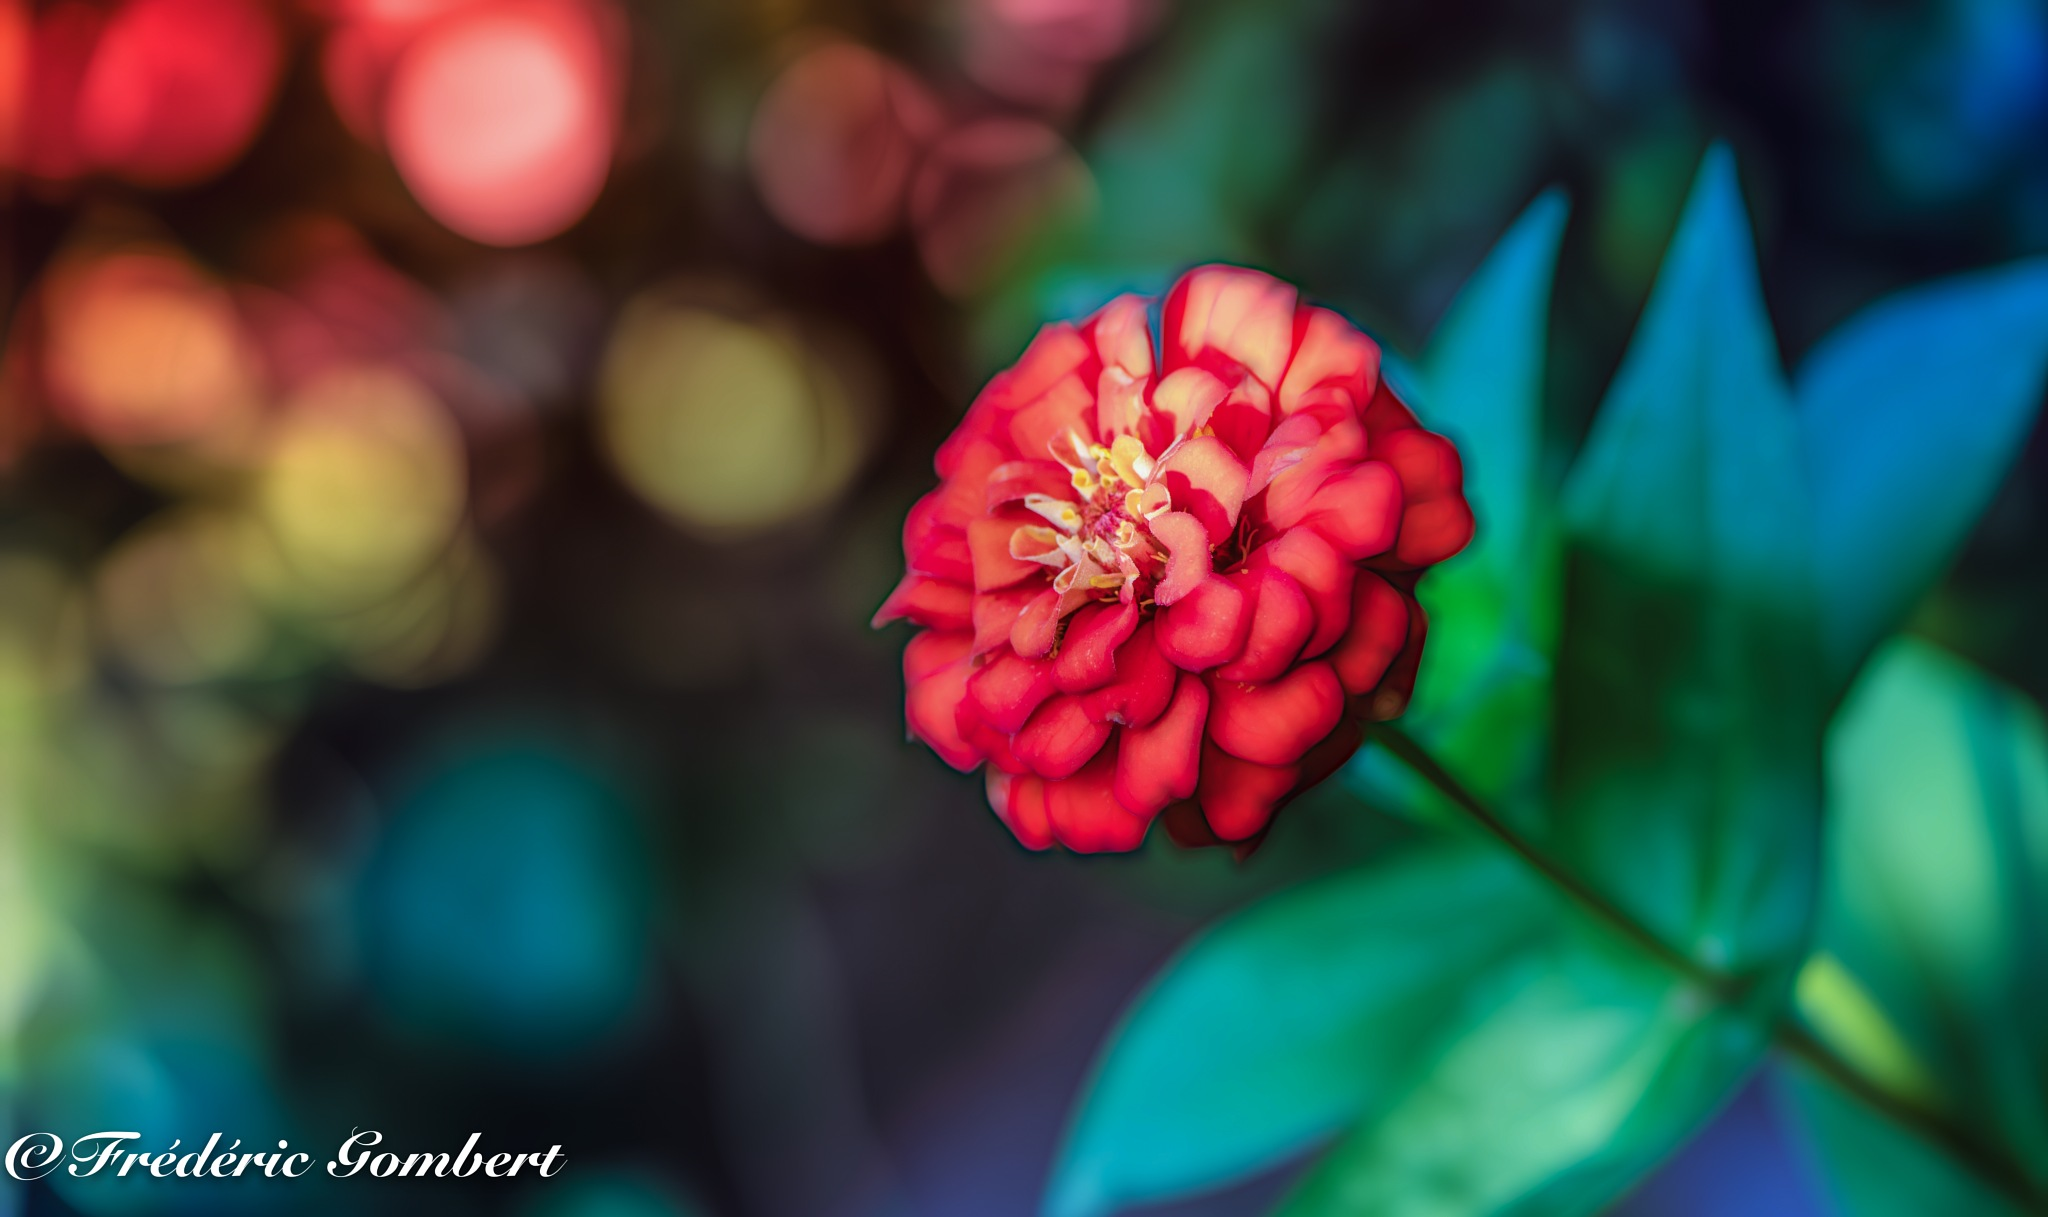 a piece of Summer by Frederic Gombert